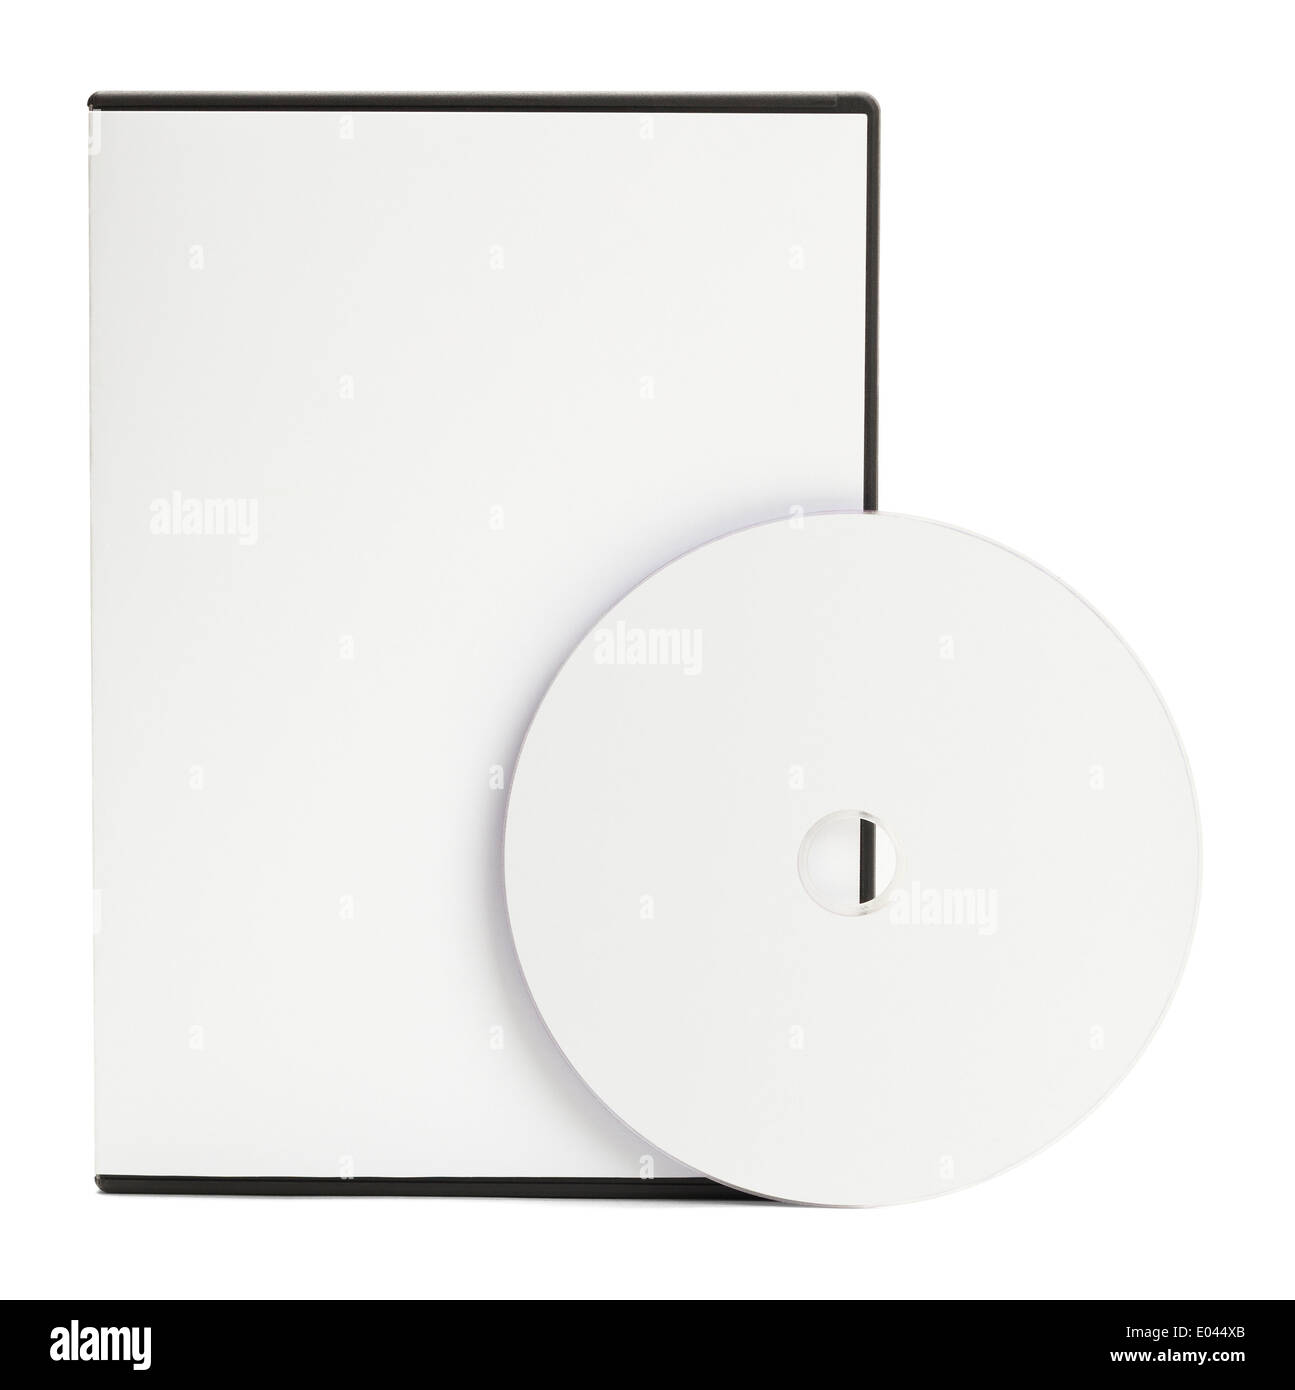 Blank White DVD Case with Blank Disc Isolated on White Background. - Stock Image